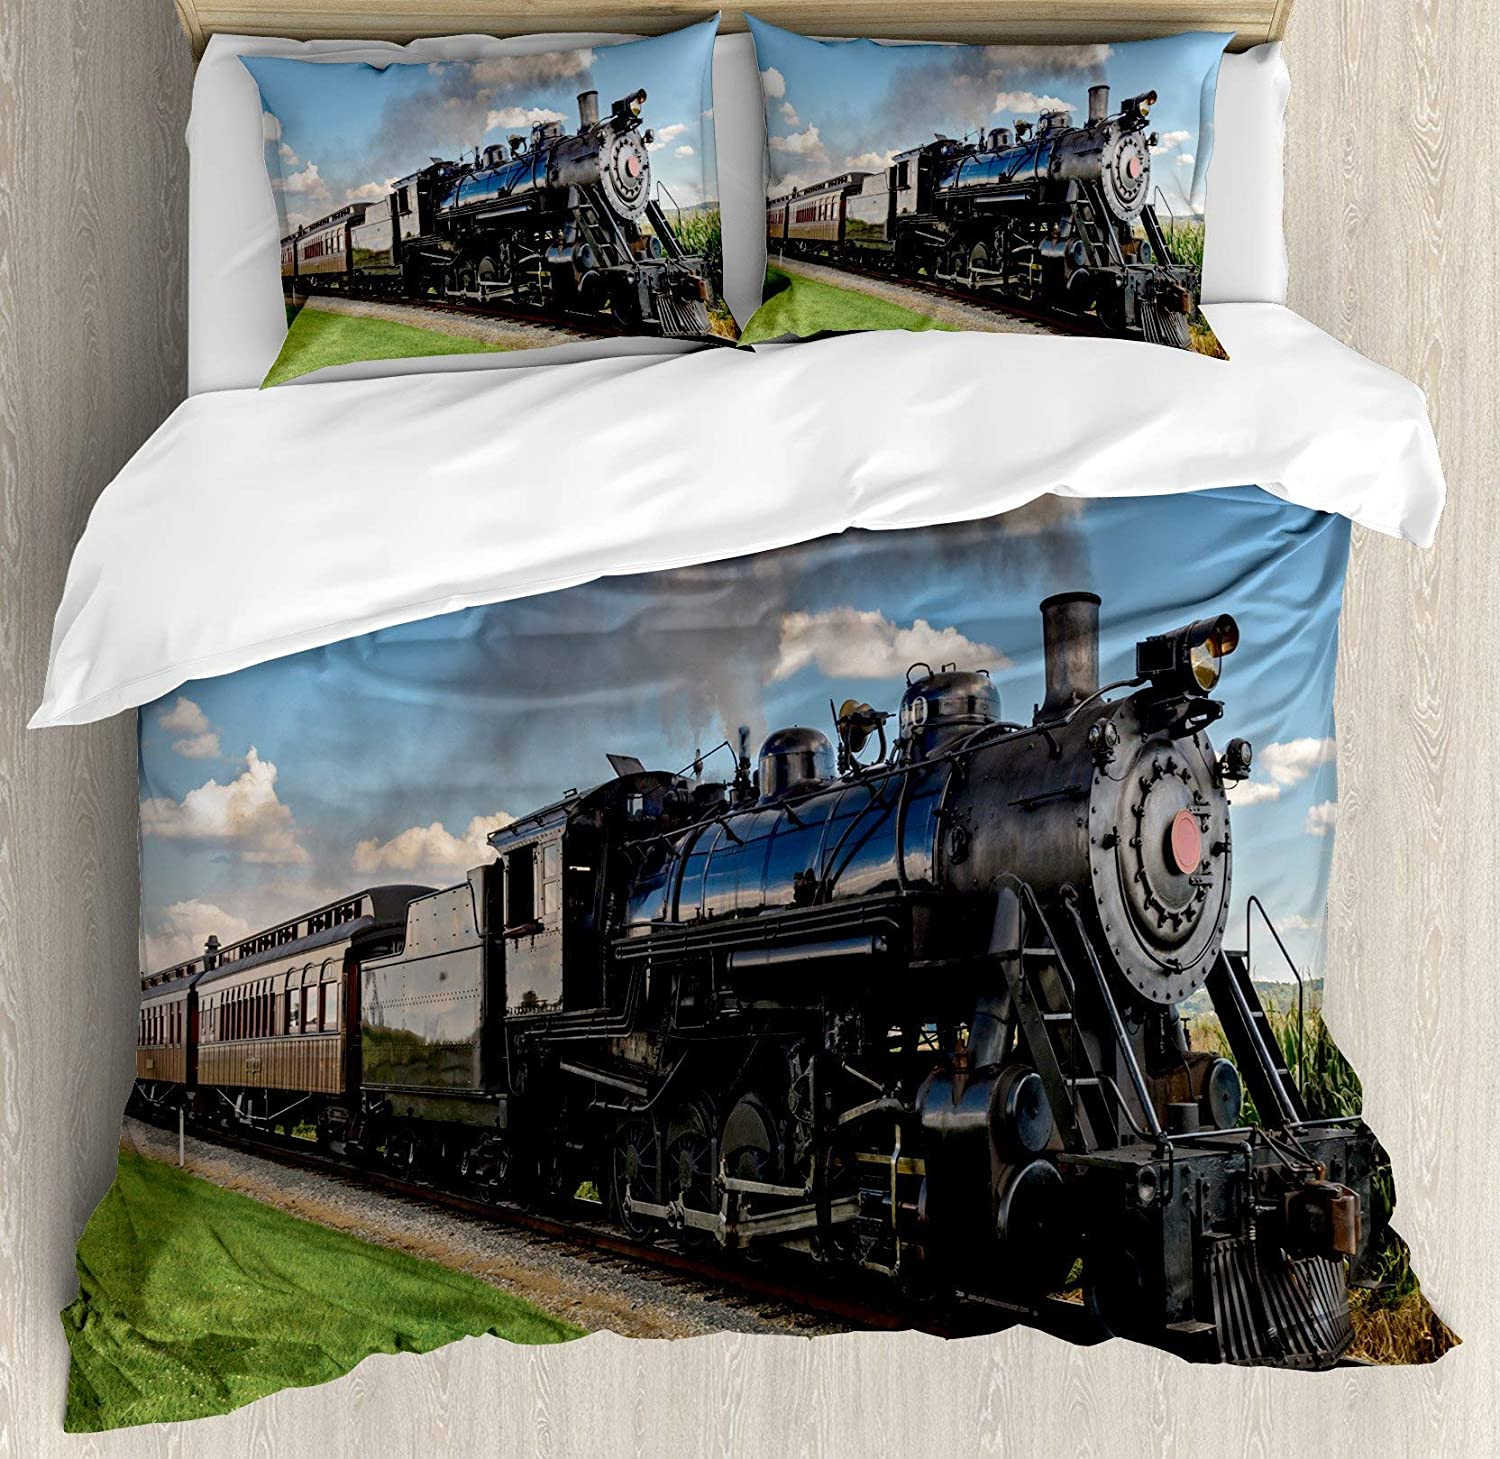 Steam Engine 4pc Bedding Set Twin Size, Vintage Locomotive in Countryside Scenery Green Grass Puff Train Picture Floral Lightweight Microfiber Duvet Cover Set, bluee Green Black